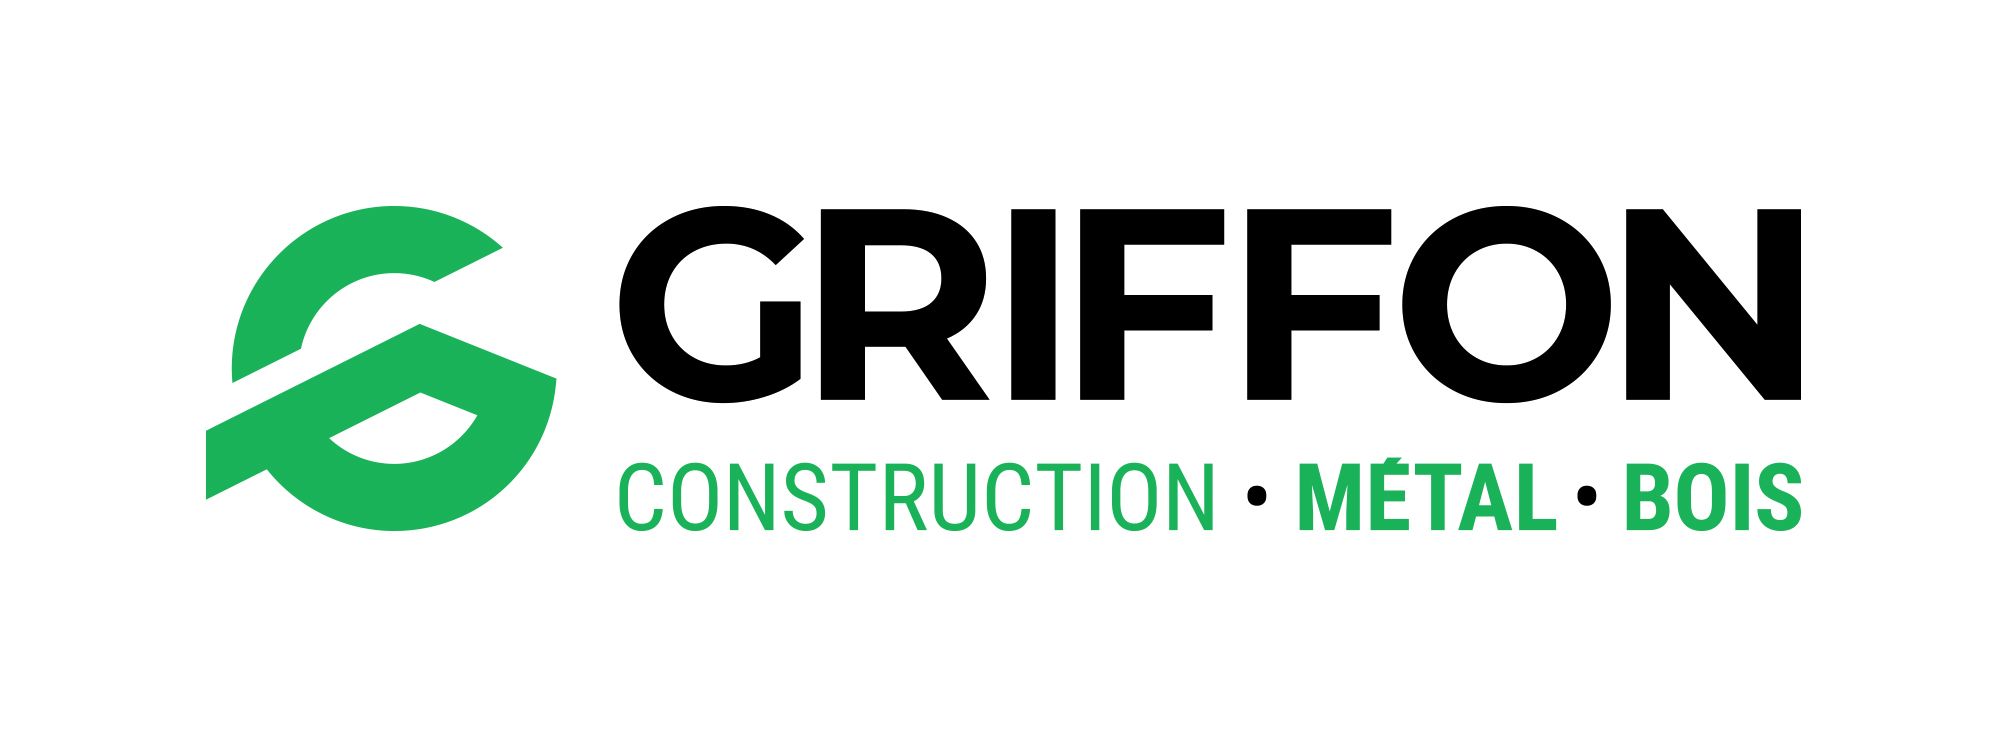 https://www.griffon-constructions-agricoles.fr/